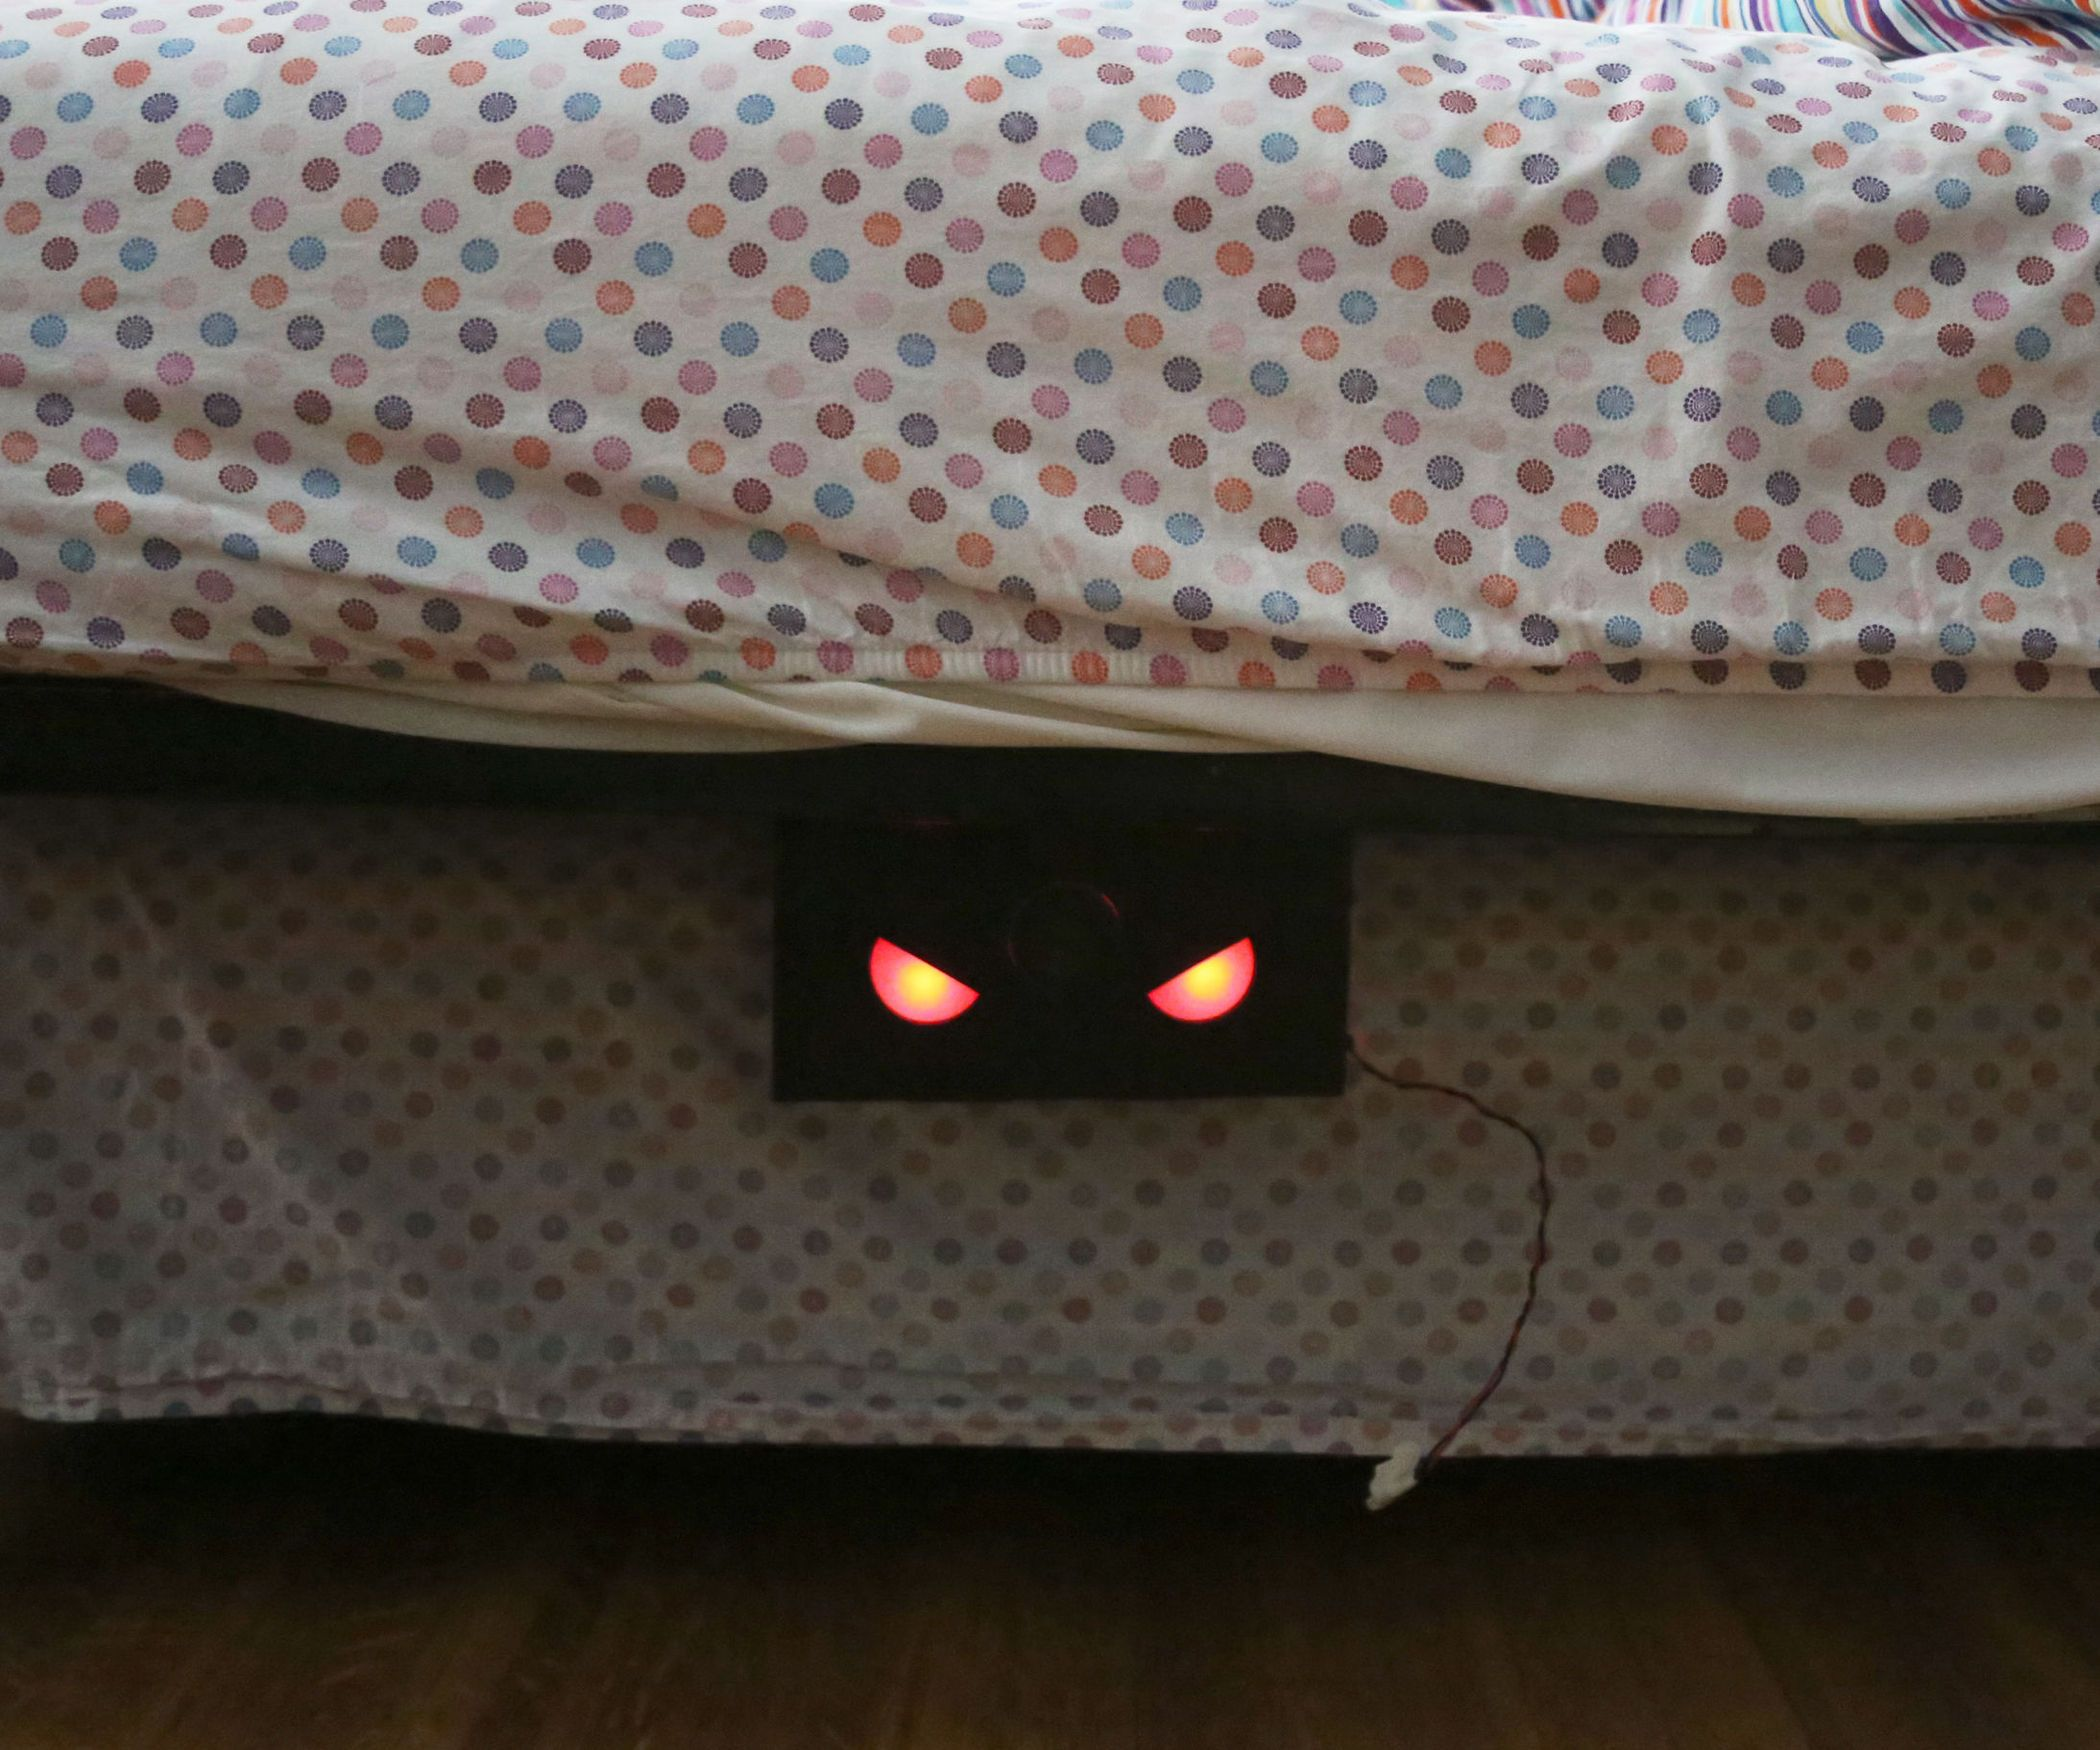 This box makes scary noises and has glowing red eyes that turn on when the lights go out Put it under a bed or desk to prank your friends or colleag